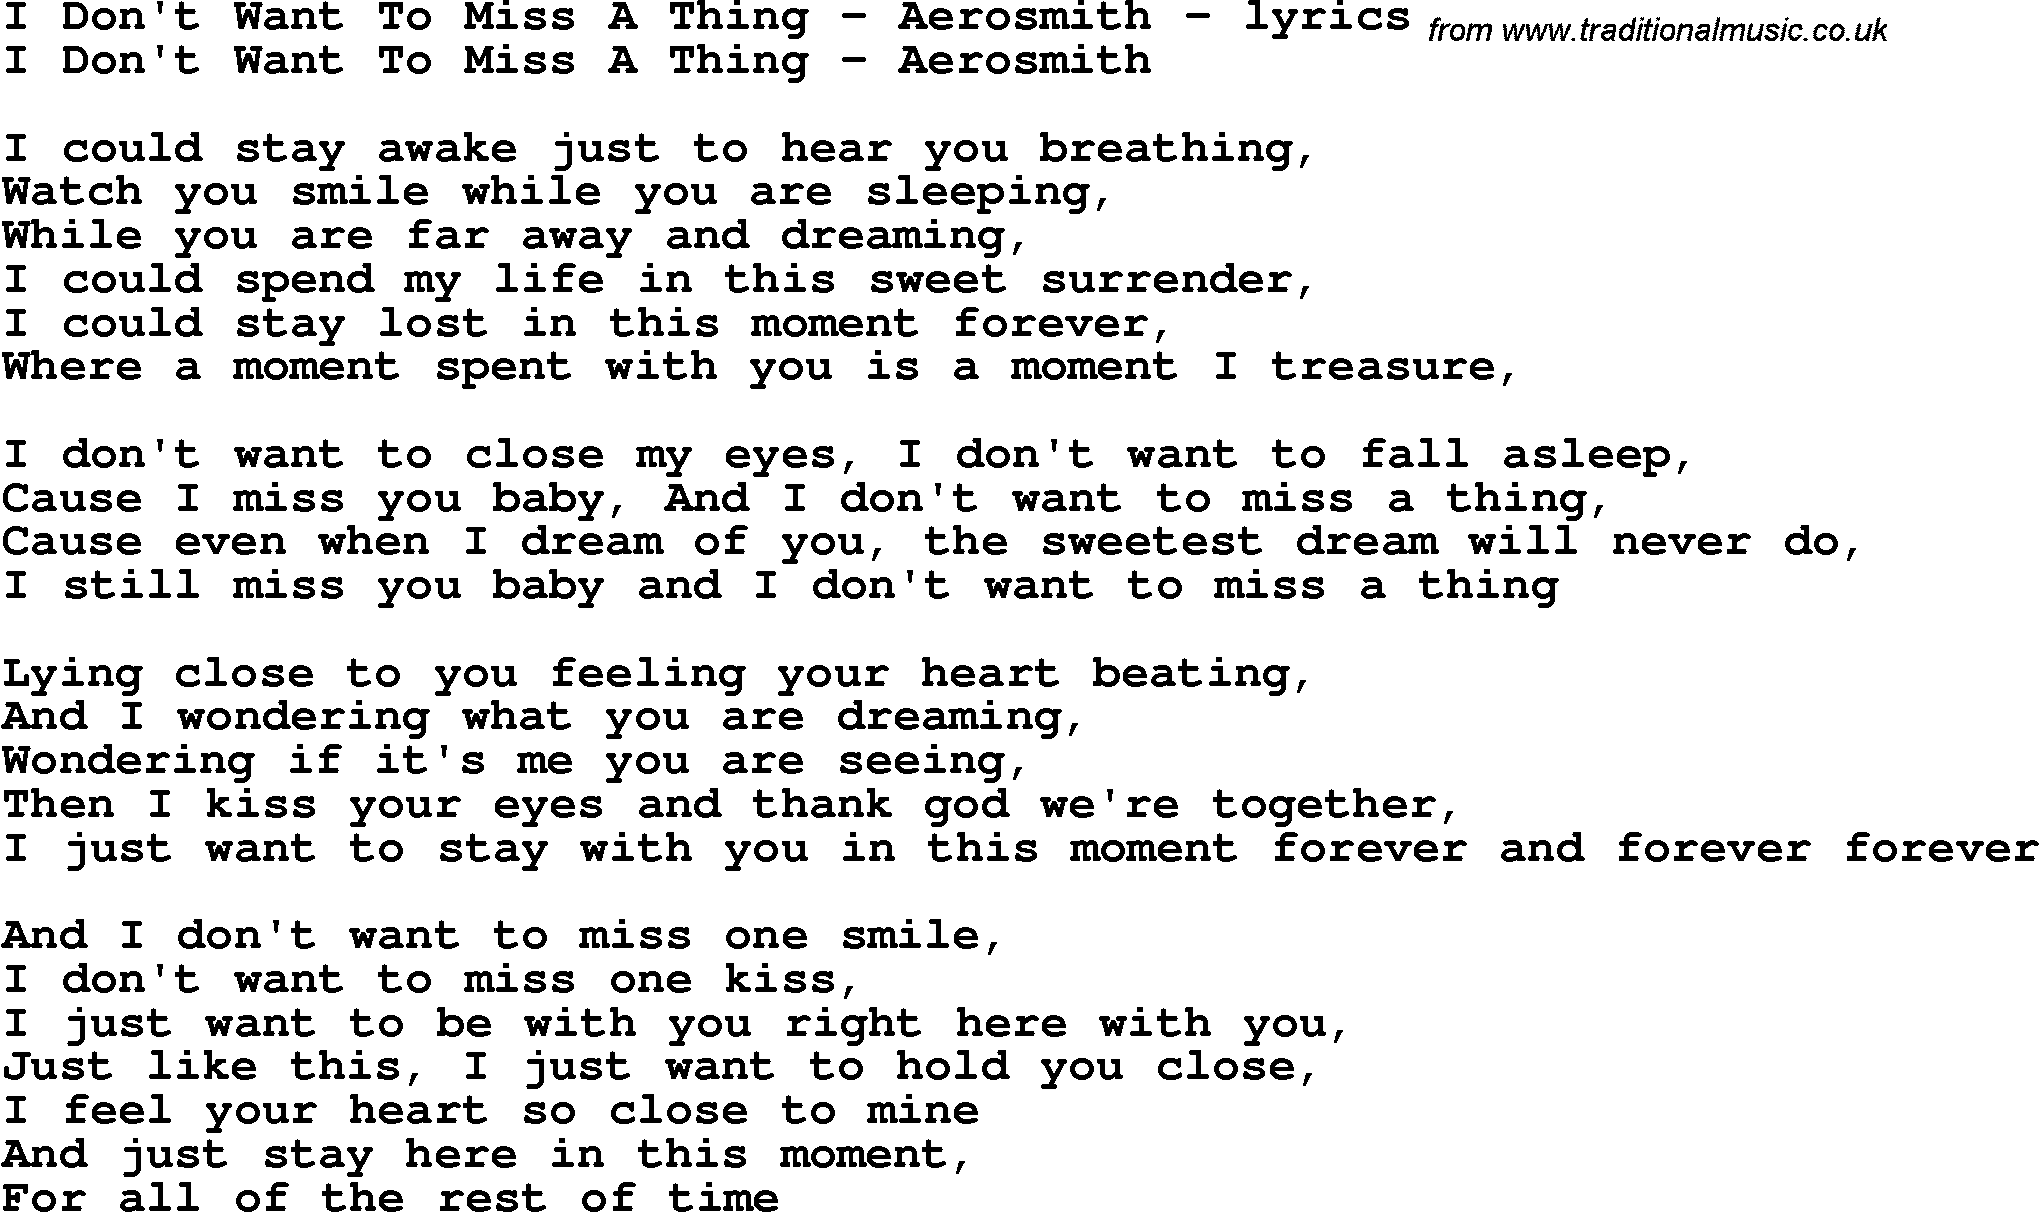 Lyrics to a song about missing someone